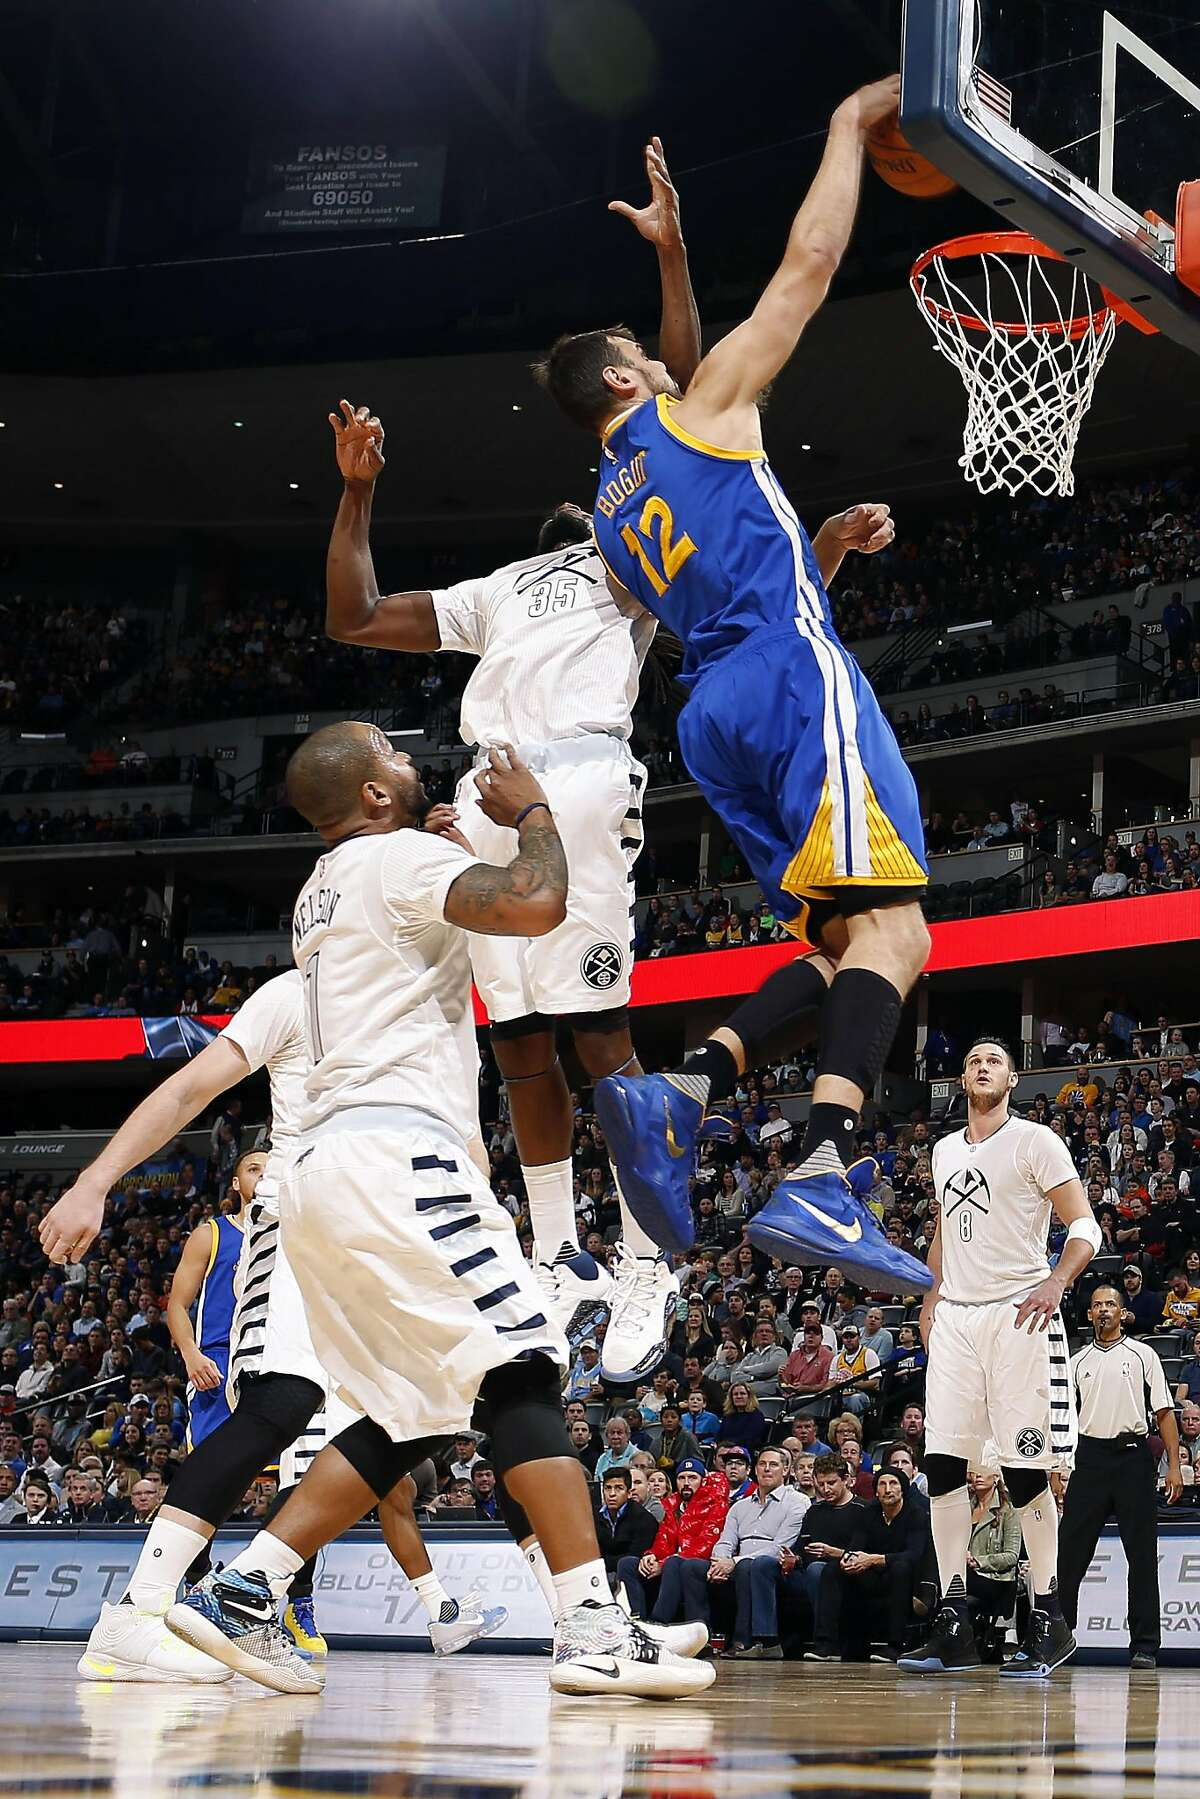 Golden State Warriors center Andrew Bogut, right, of Australia, dunks the ball for a basket as Denver Nuggets forward Darrell Arthur, center, and guard Jameer Nelson defend during the first half of an NBA basketball game Wednesday, Jan. 13, 2016, in Denver. (AP Photo/David Zalubowski)